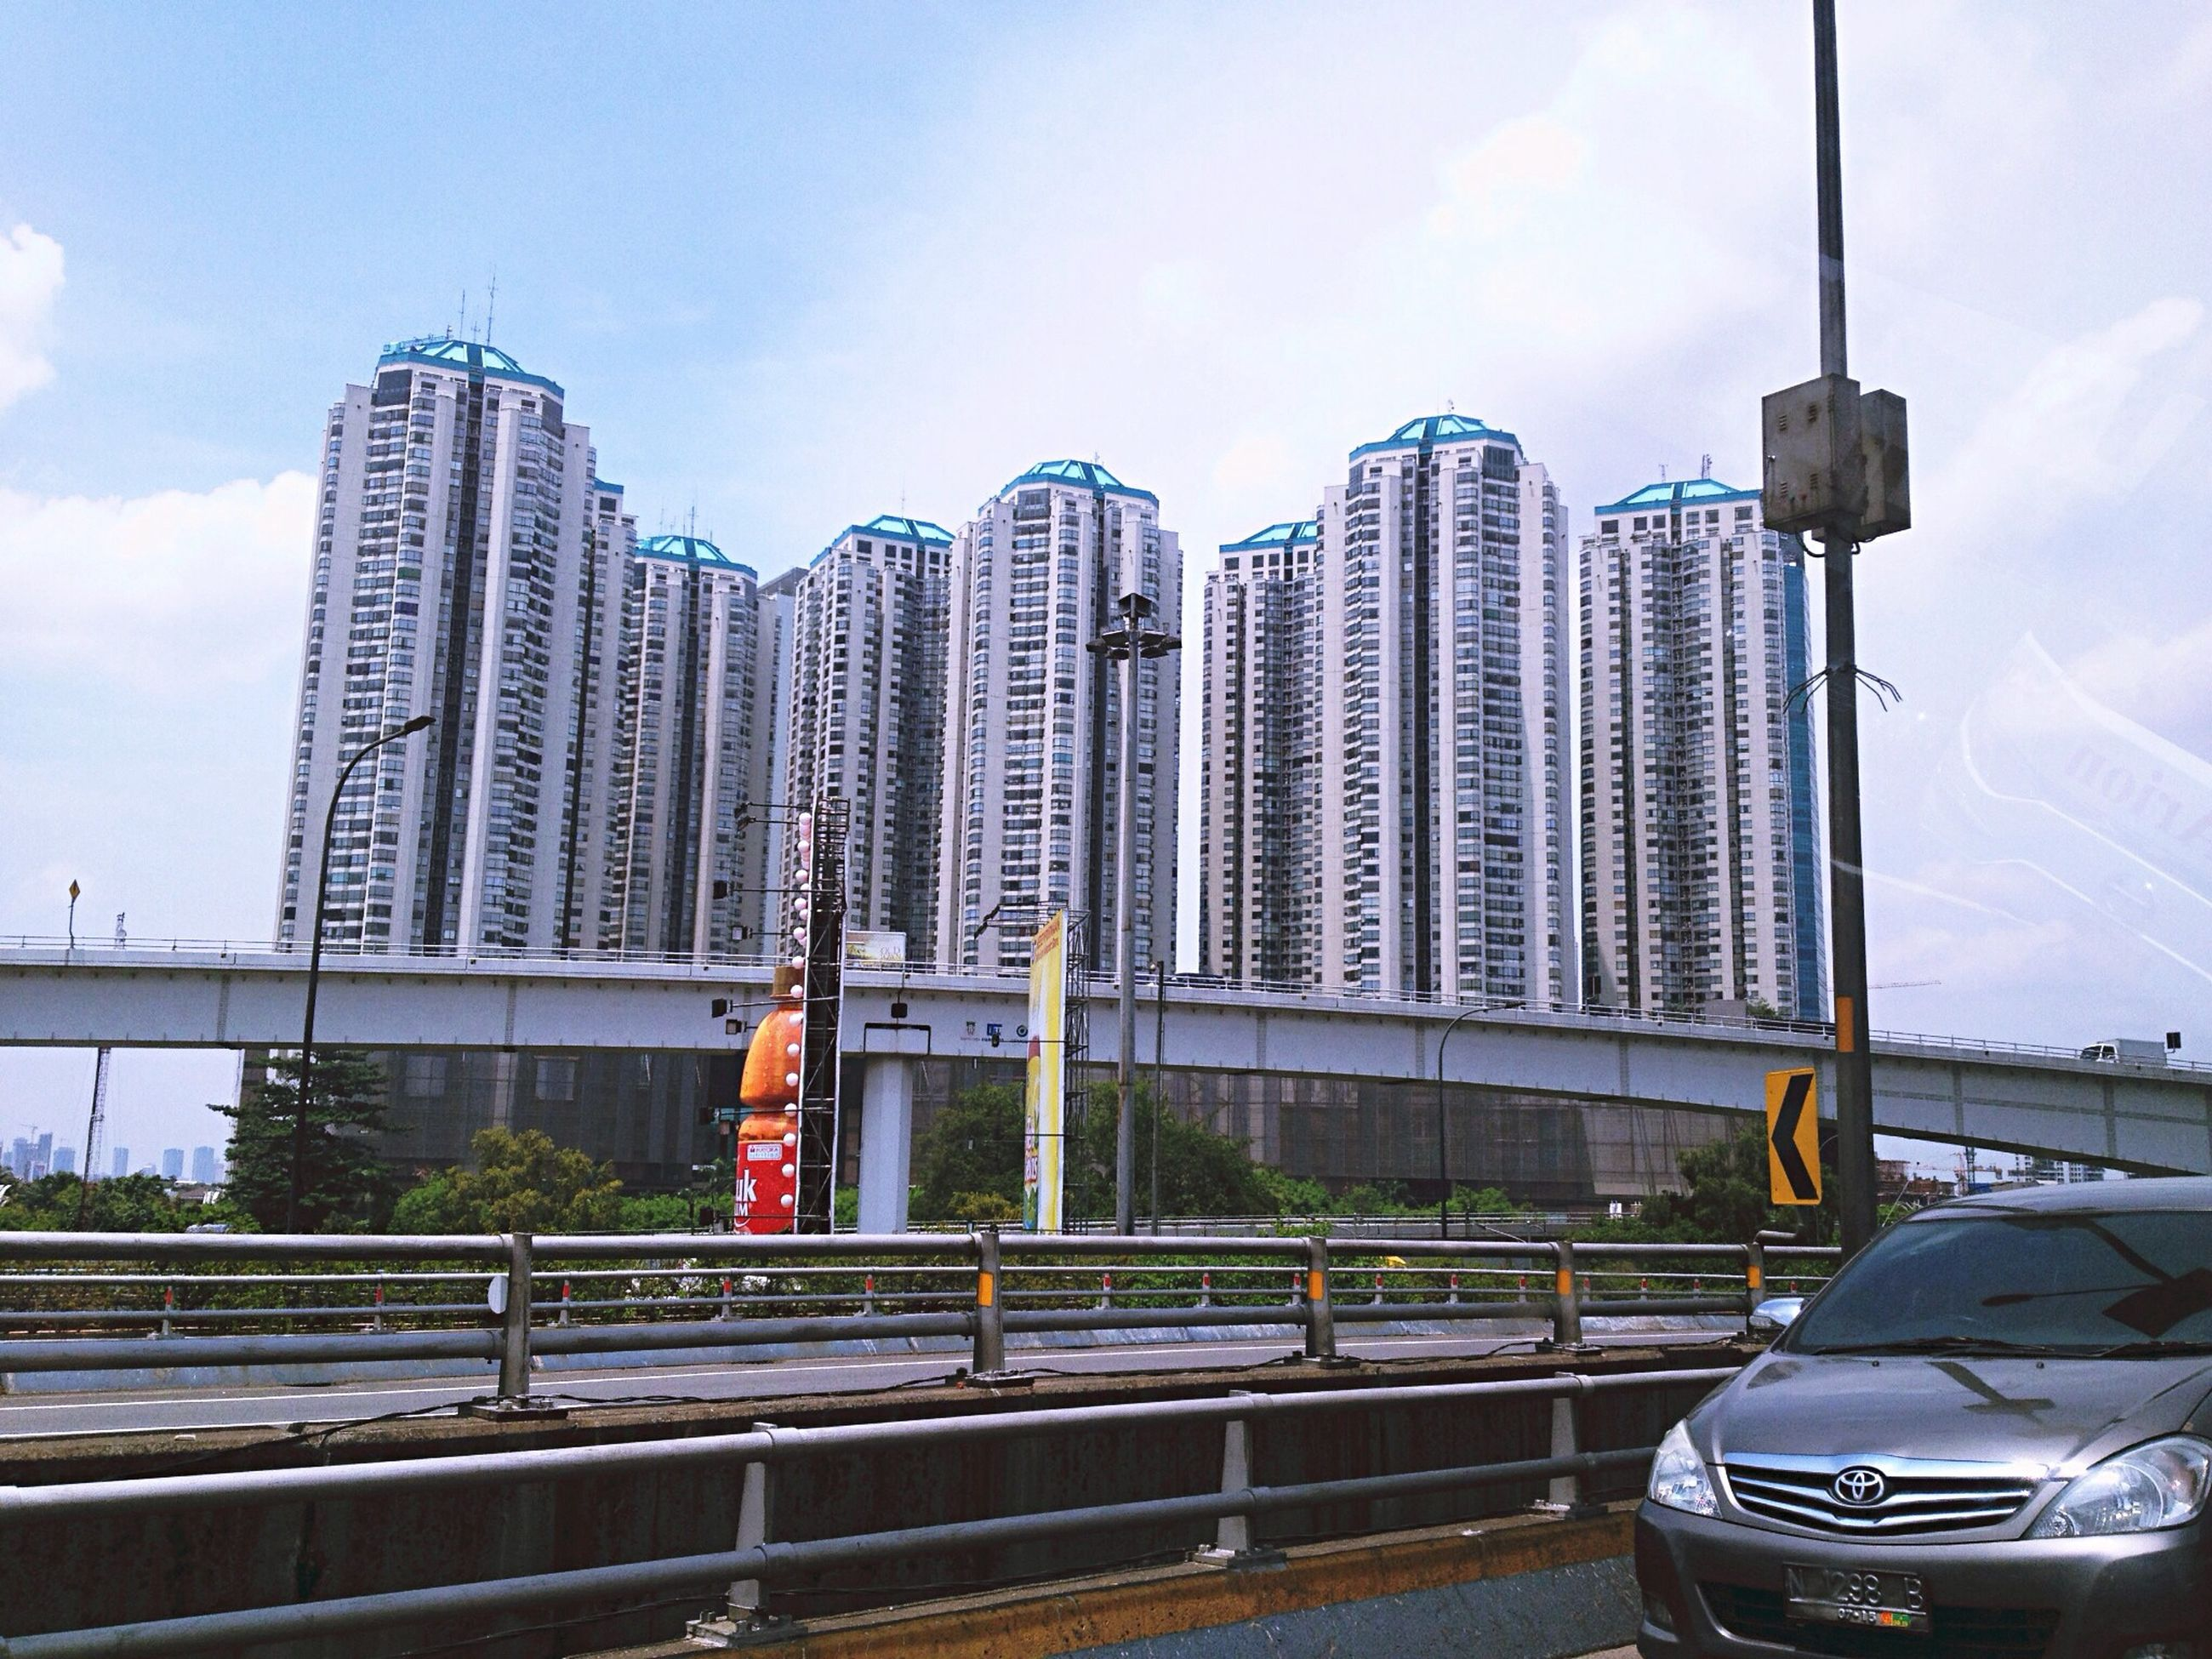 architecture, built structure, city, building exterior, sky, transportation, skyscraper, modern, street light, office building, car, mode of transport, tower, road, land vehicle, cloud - sky, city life, tall - high, railing, bridge - man made structure